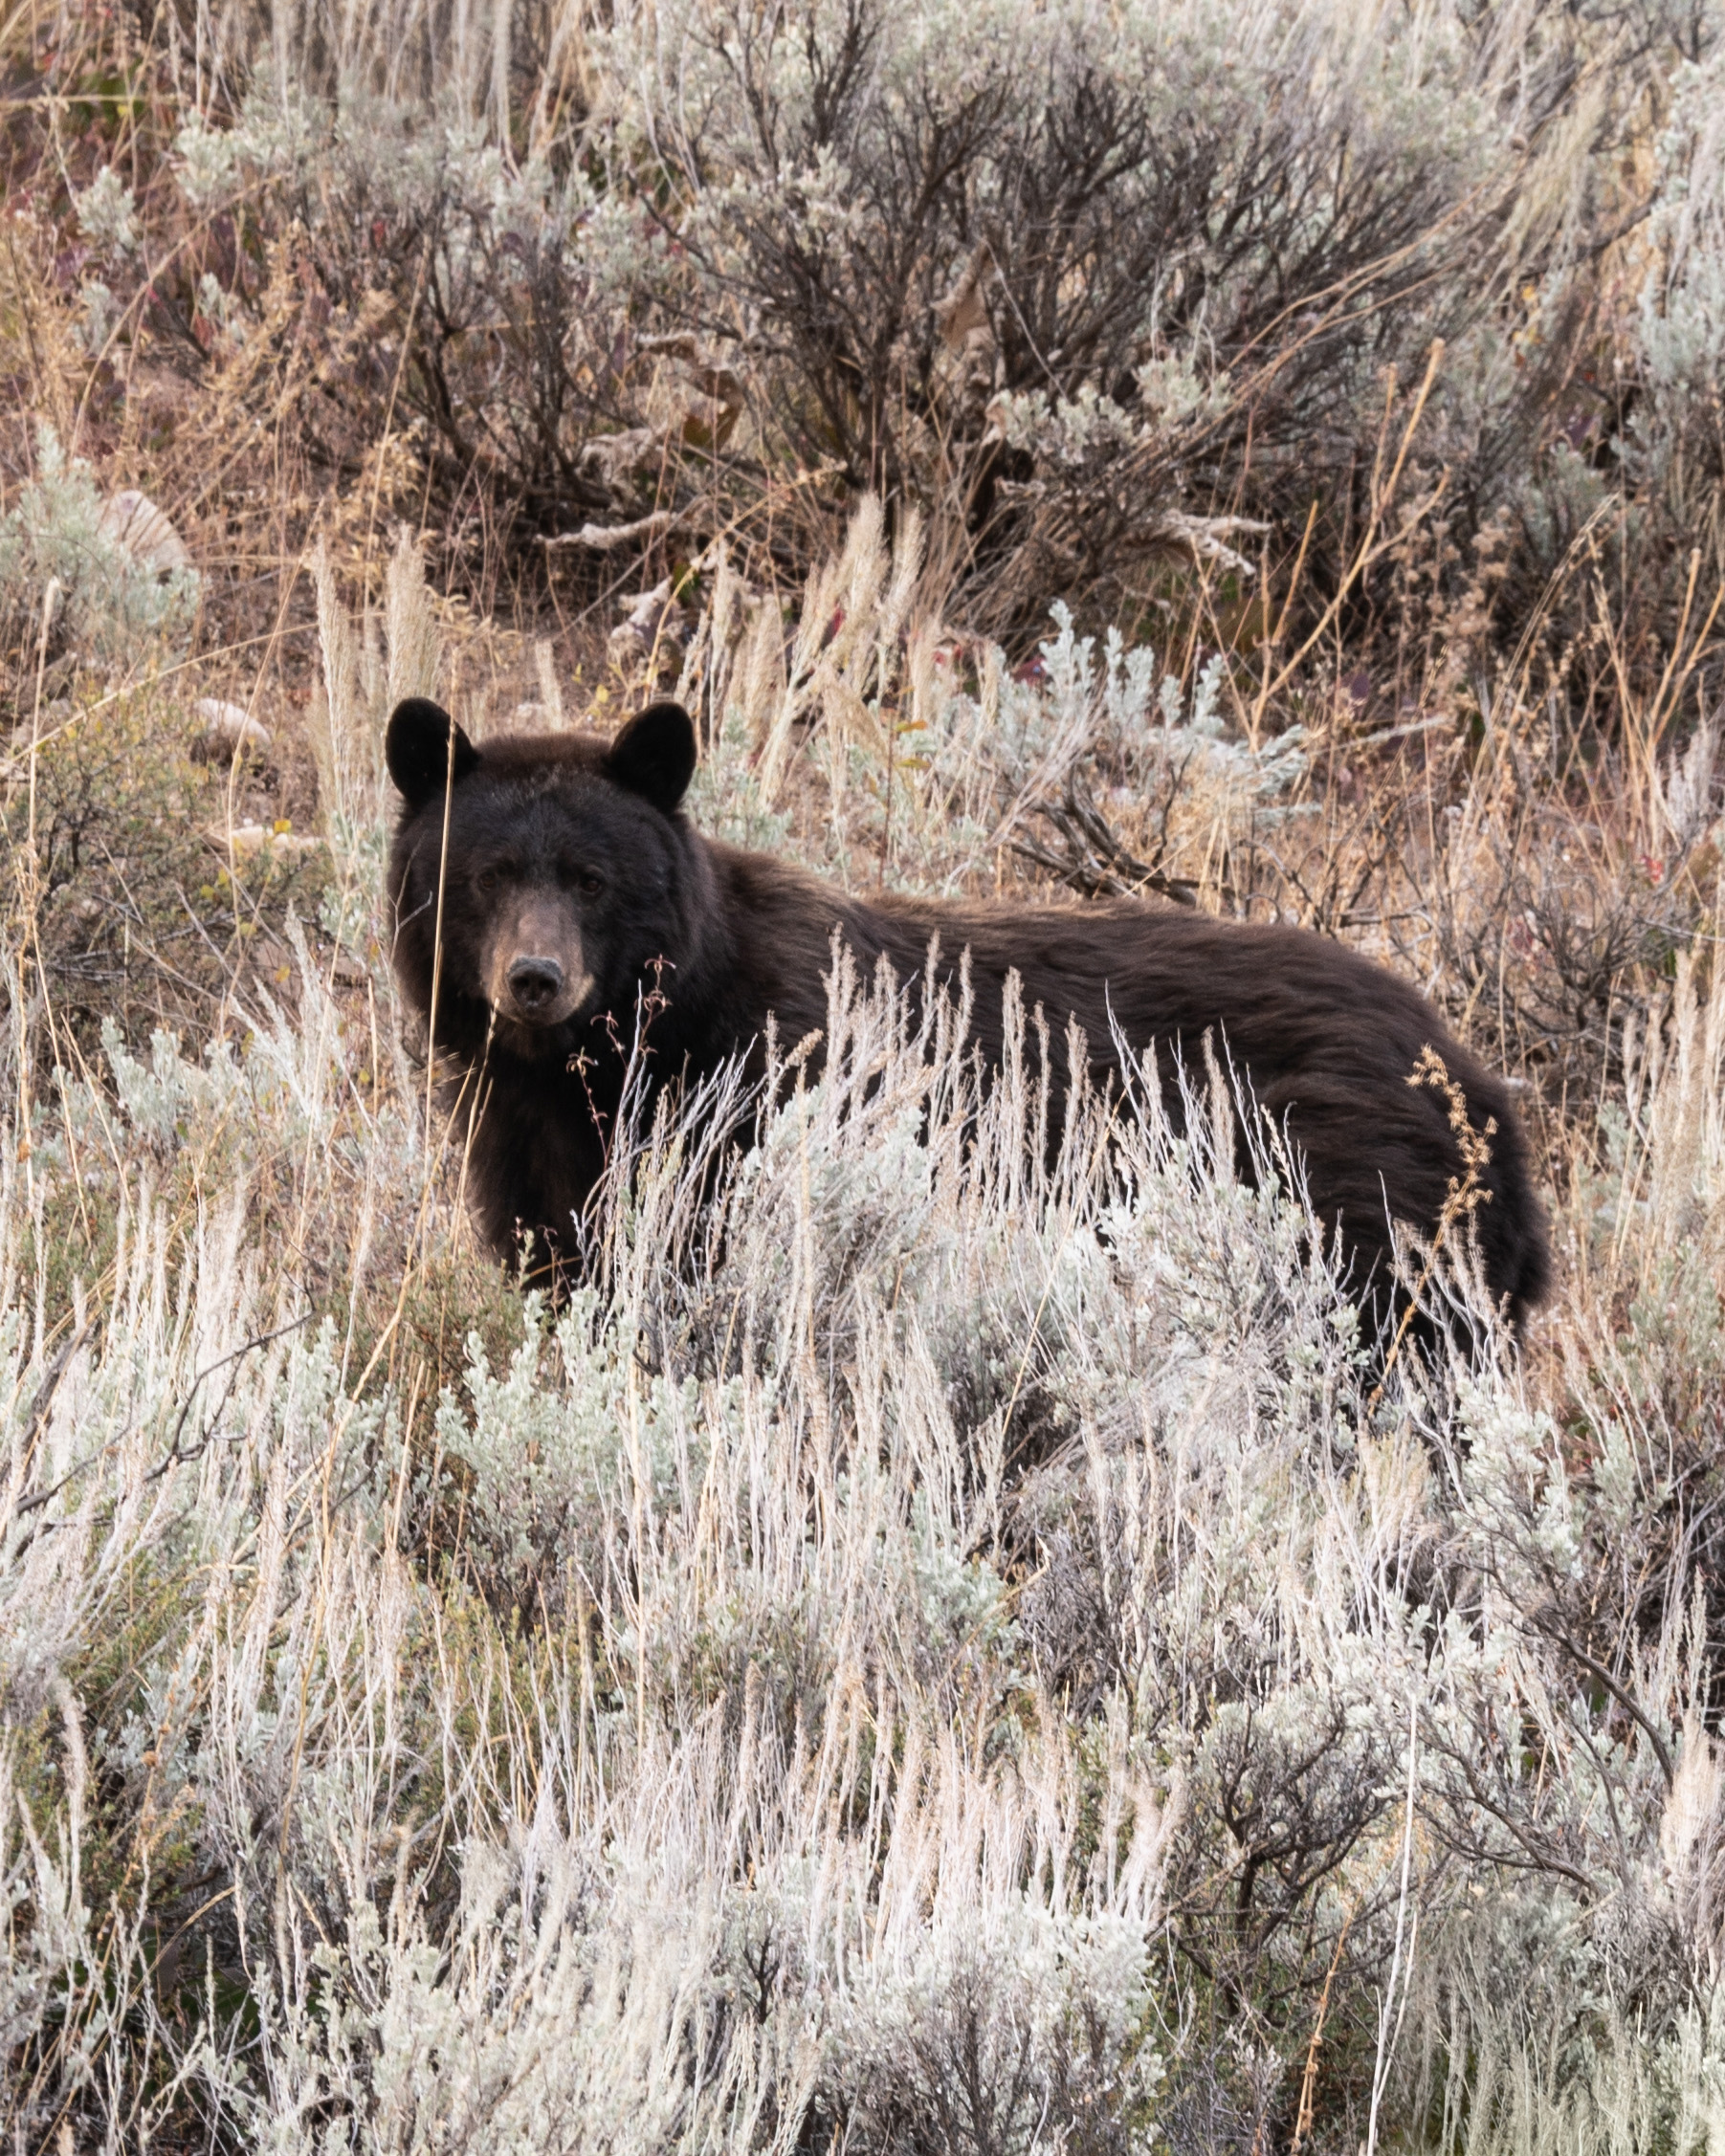 #bear, #grandtetonnationalpark, #grandtetons, #nationalpark, #wildlife, #sony, #RRS, #tripod, #staysafe, #keepyourdistance